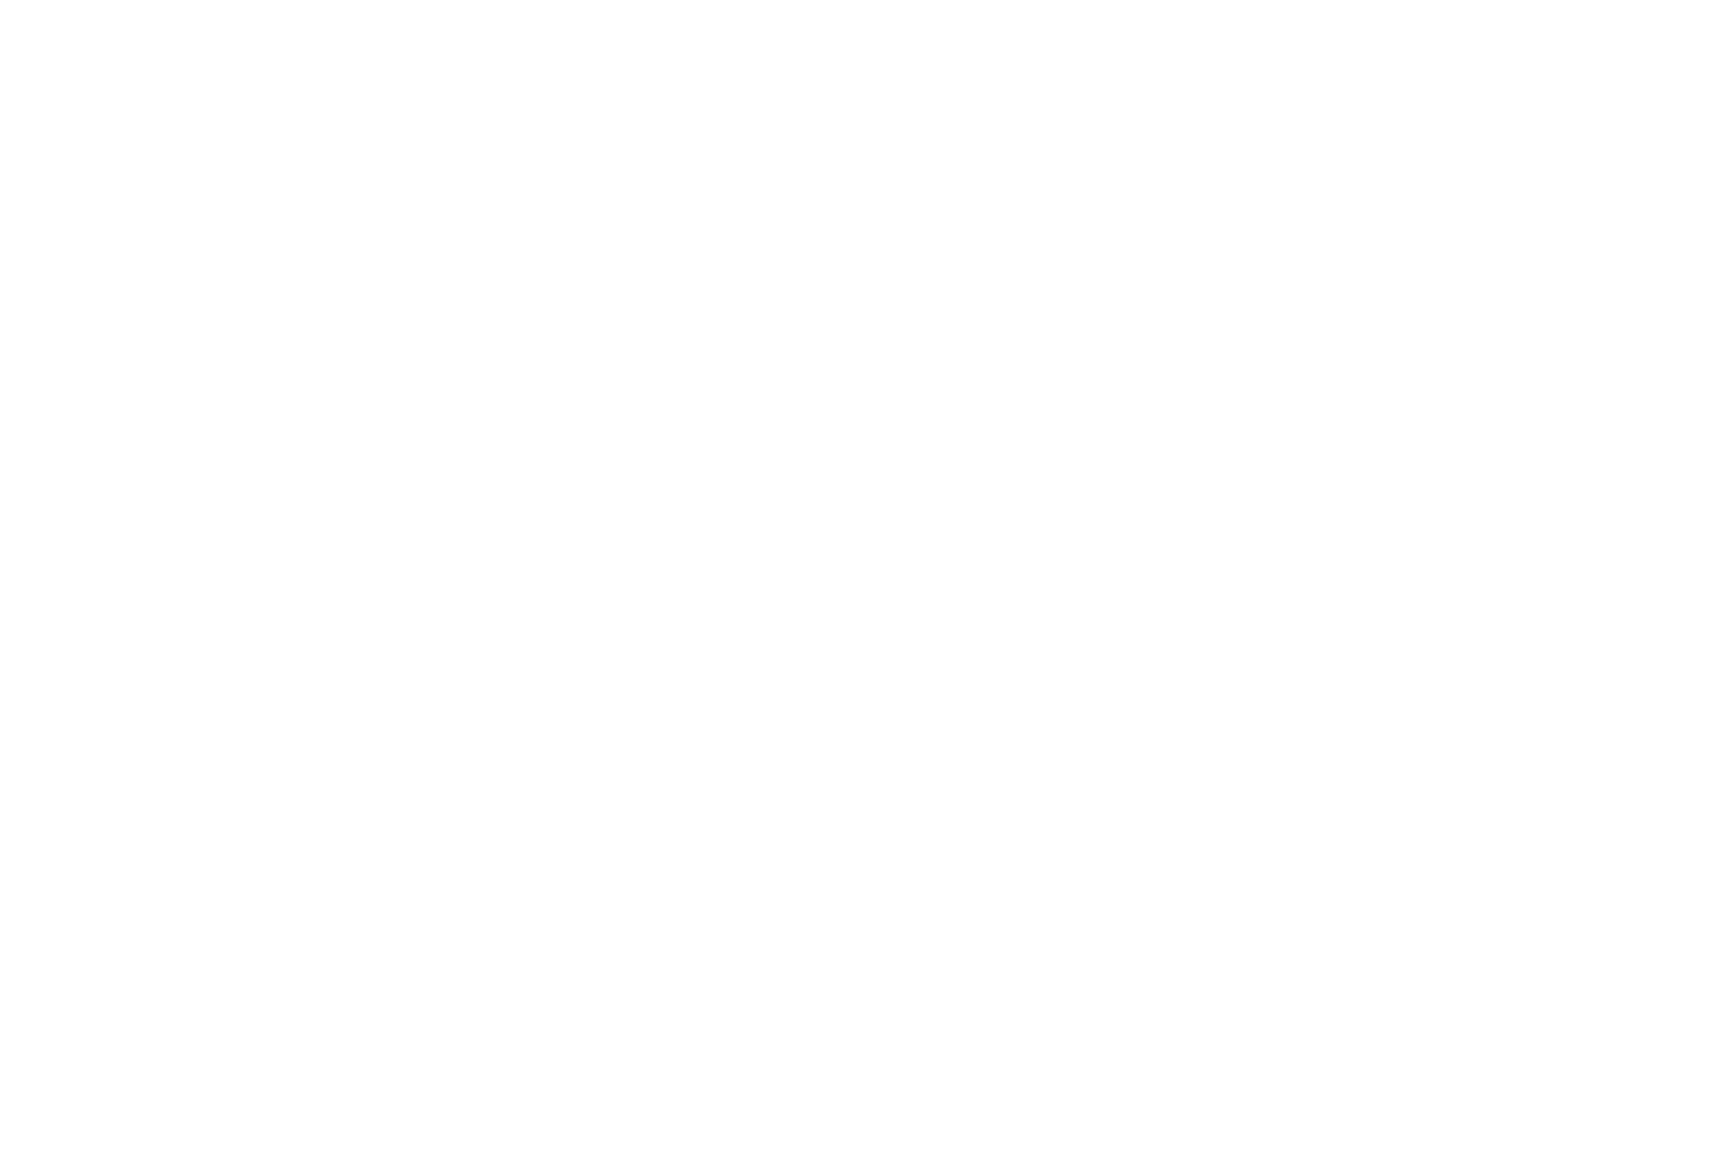 Langston Hughes African American Film Festival - 2018.png